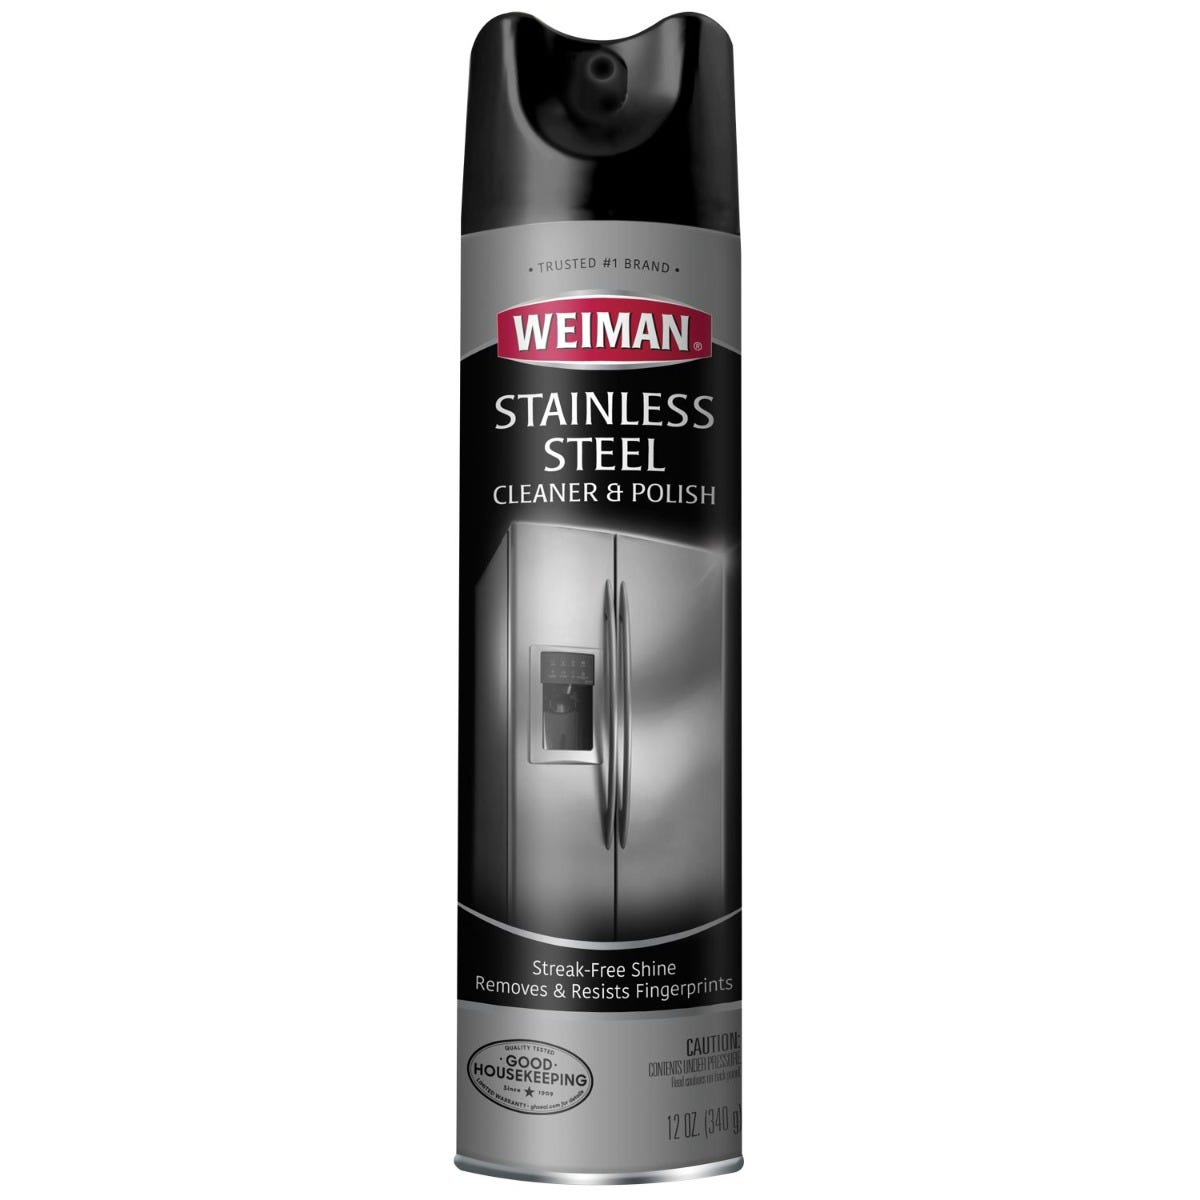 https://googone.com/media/catalog/product/w/e/weiman-stainless-steel-cleaner-aerosol_front_2_2.jpg